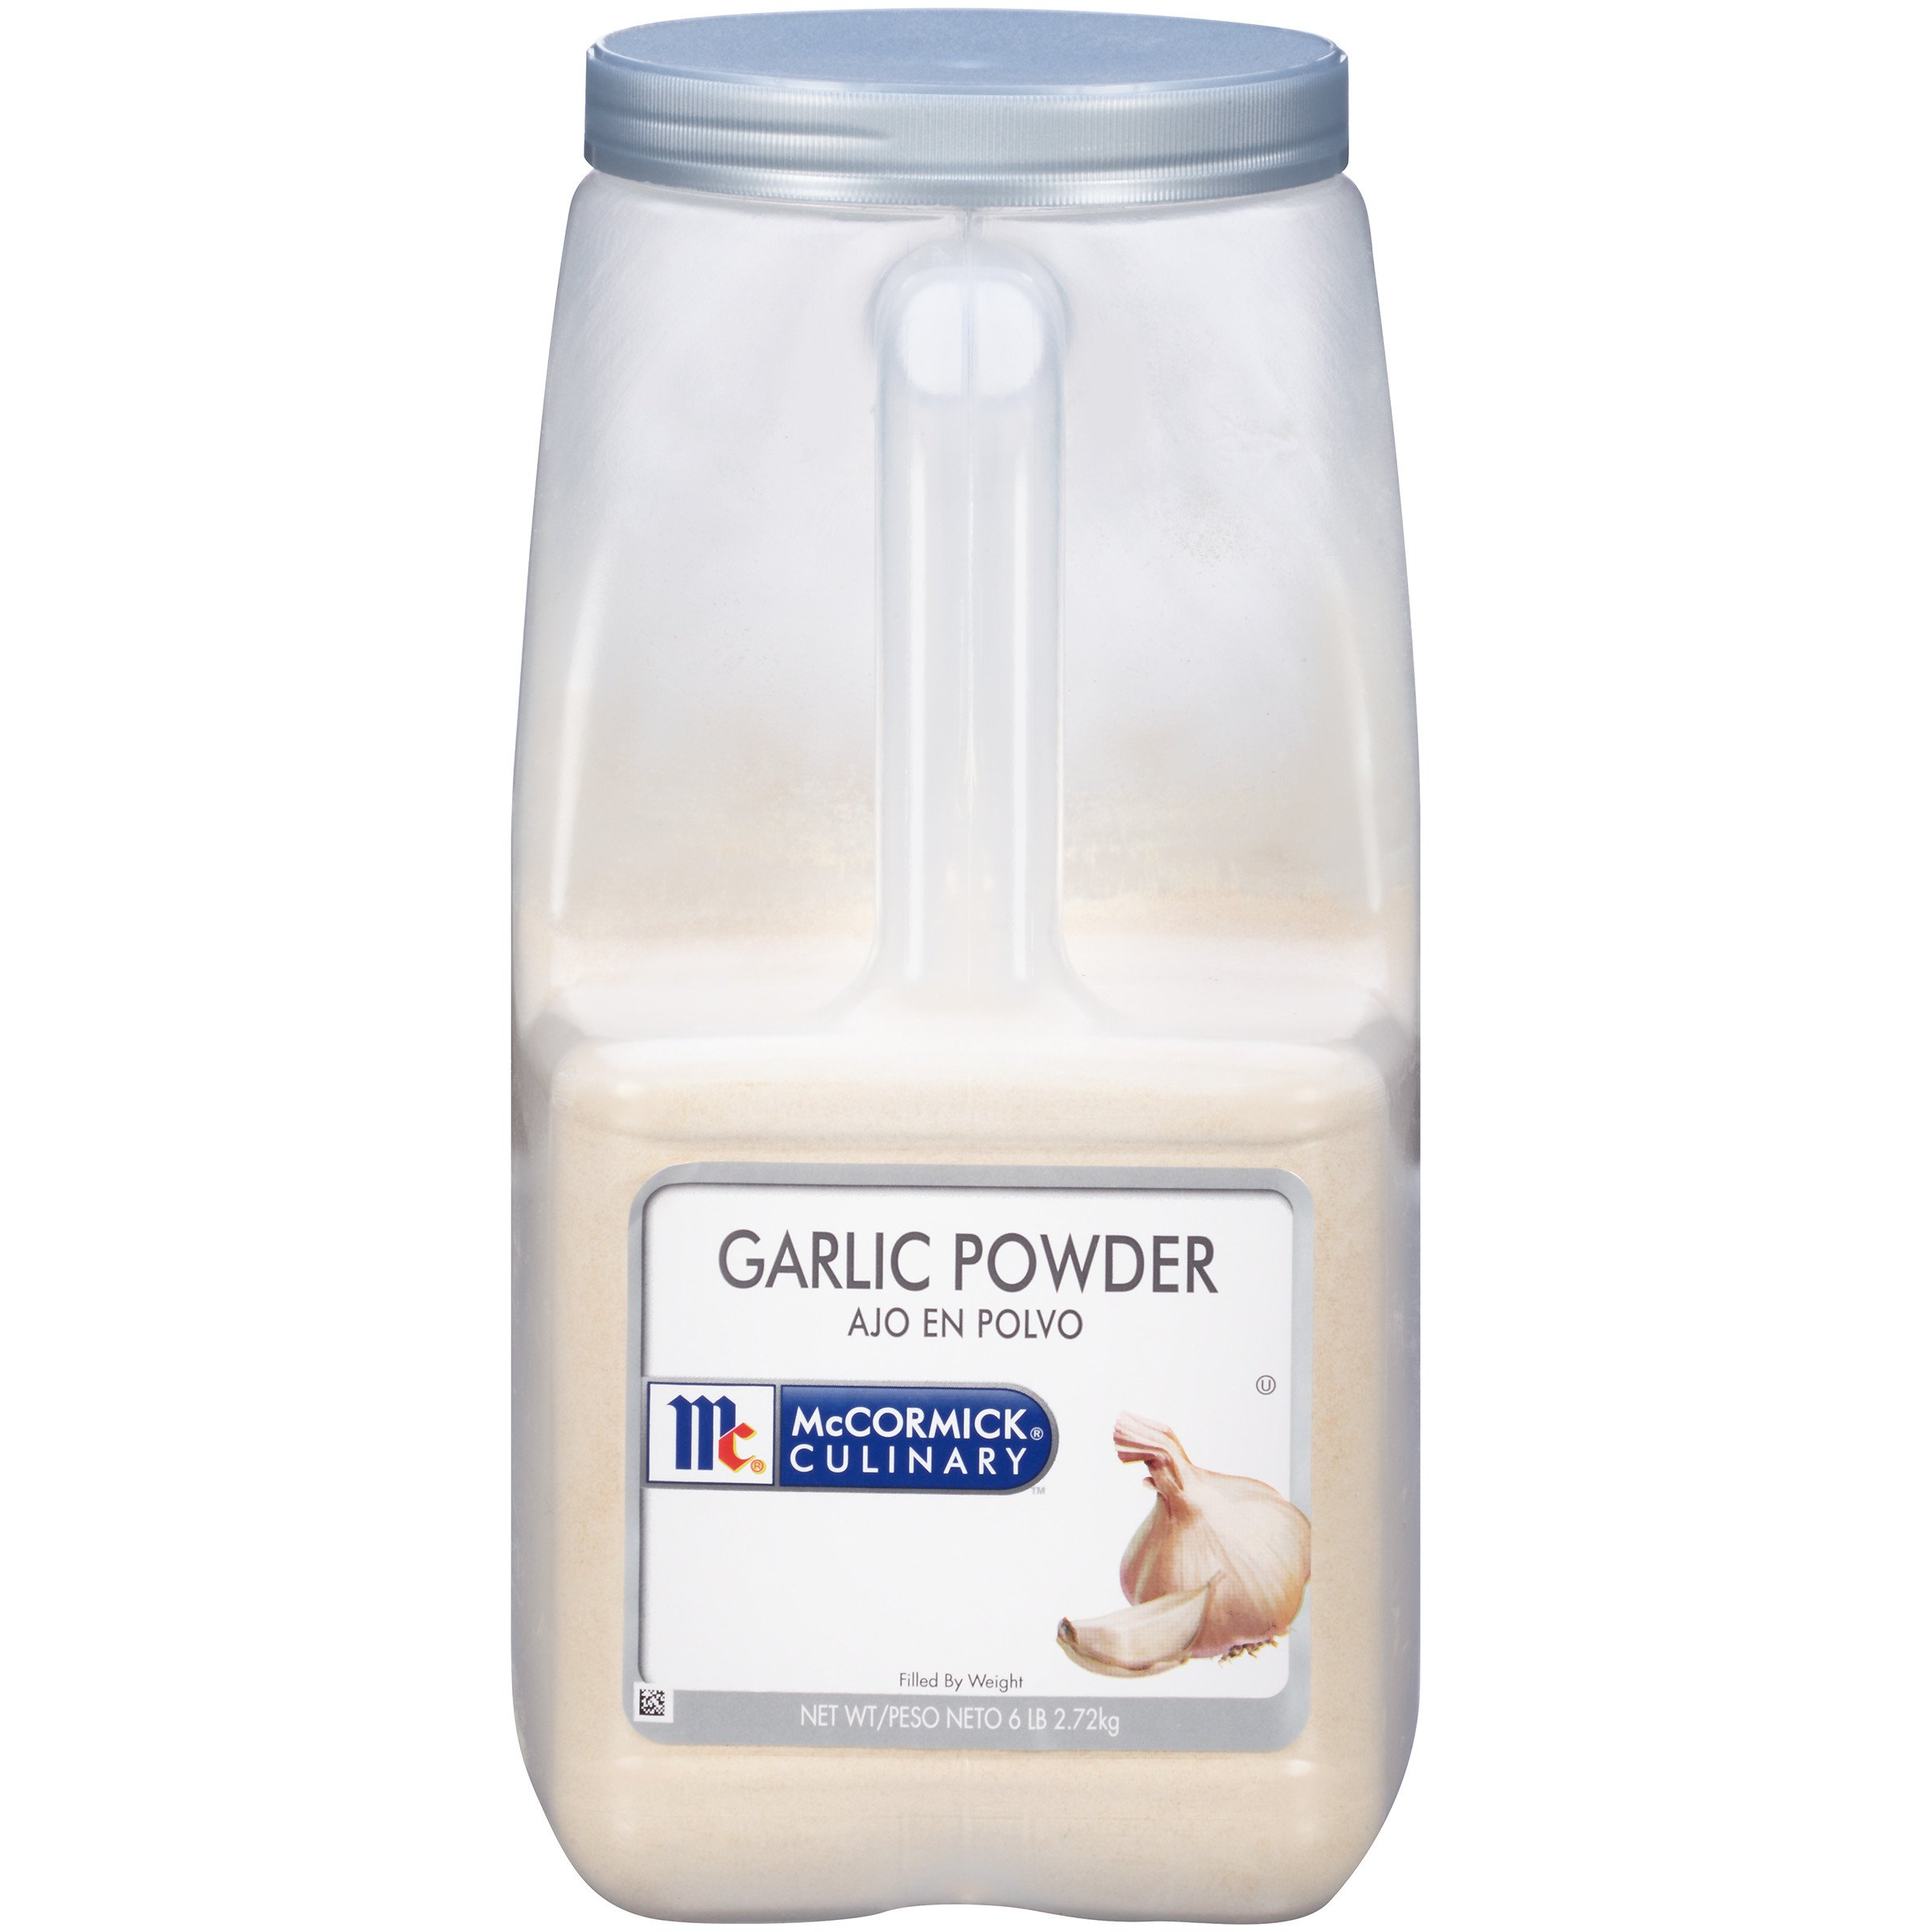 McCormick Culinary Garlic Powder, 6 lbs